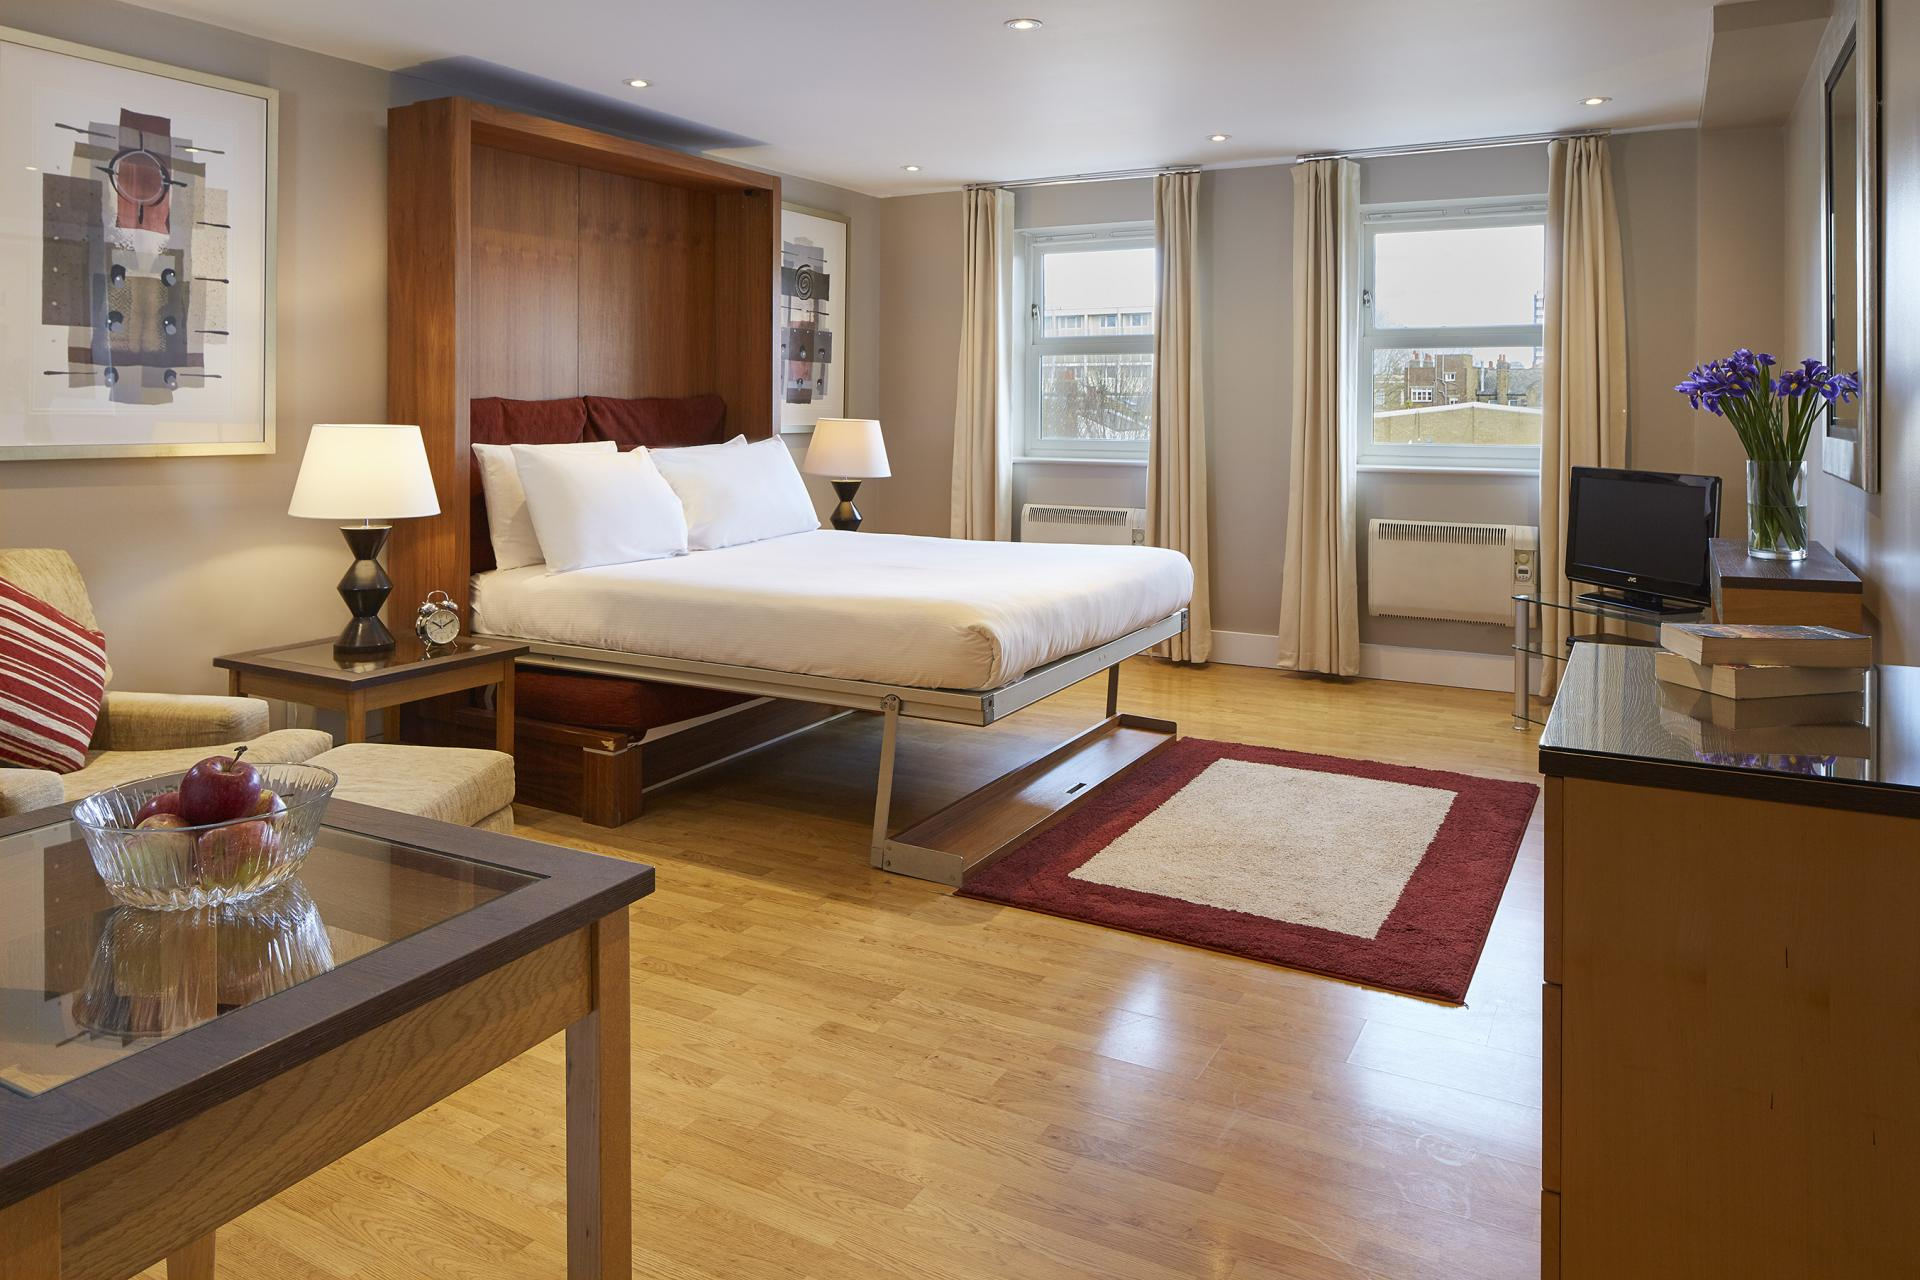 Studio at Limehouse Apartments, Limehouse, London - Citybase Apartments